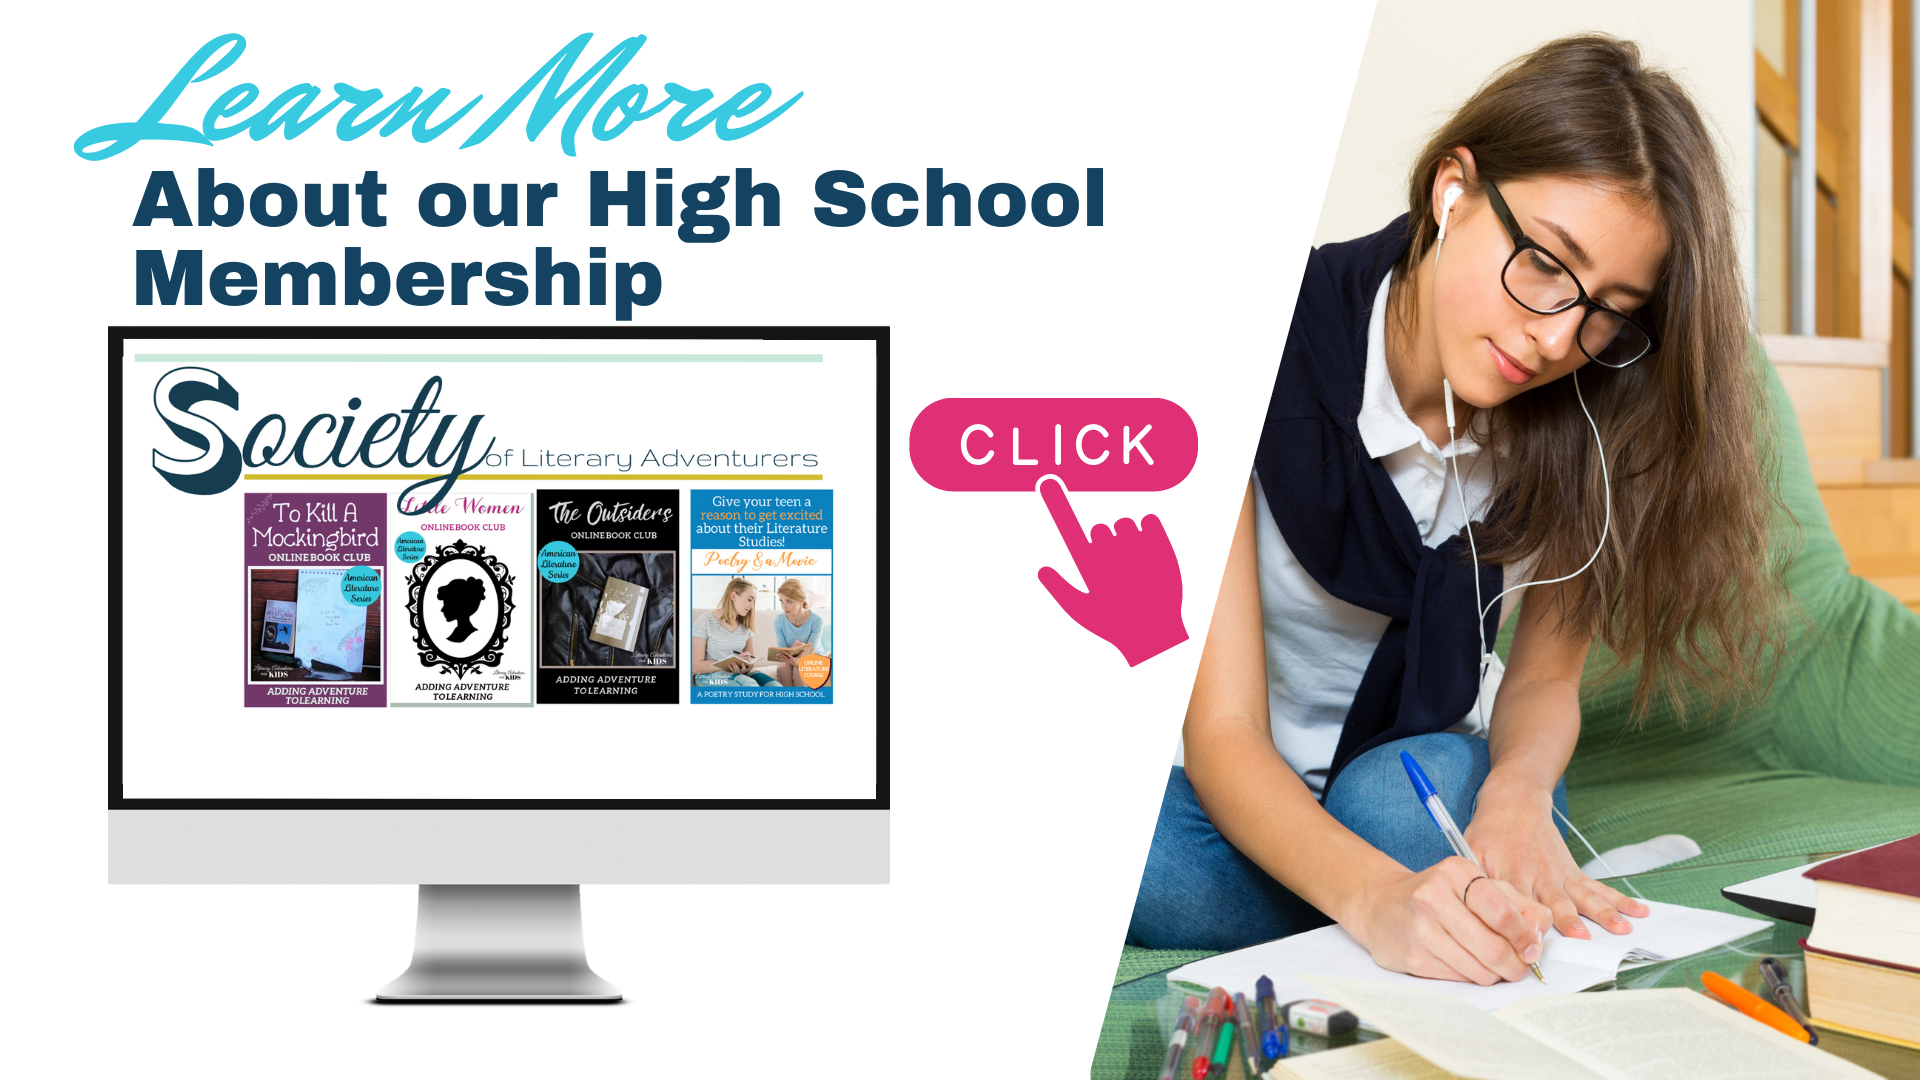 The Society of Literary Adventurers - High School Membership Learn More